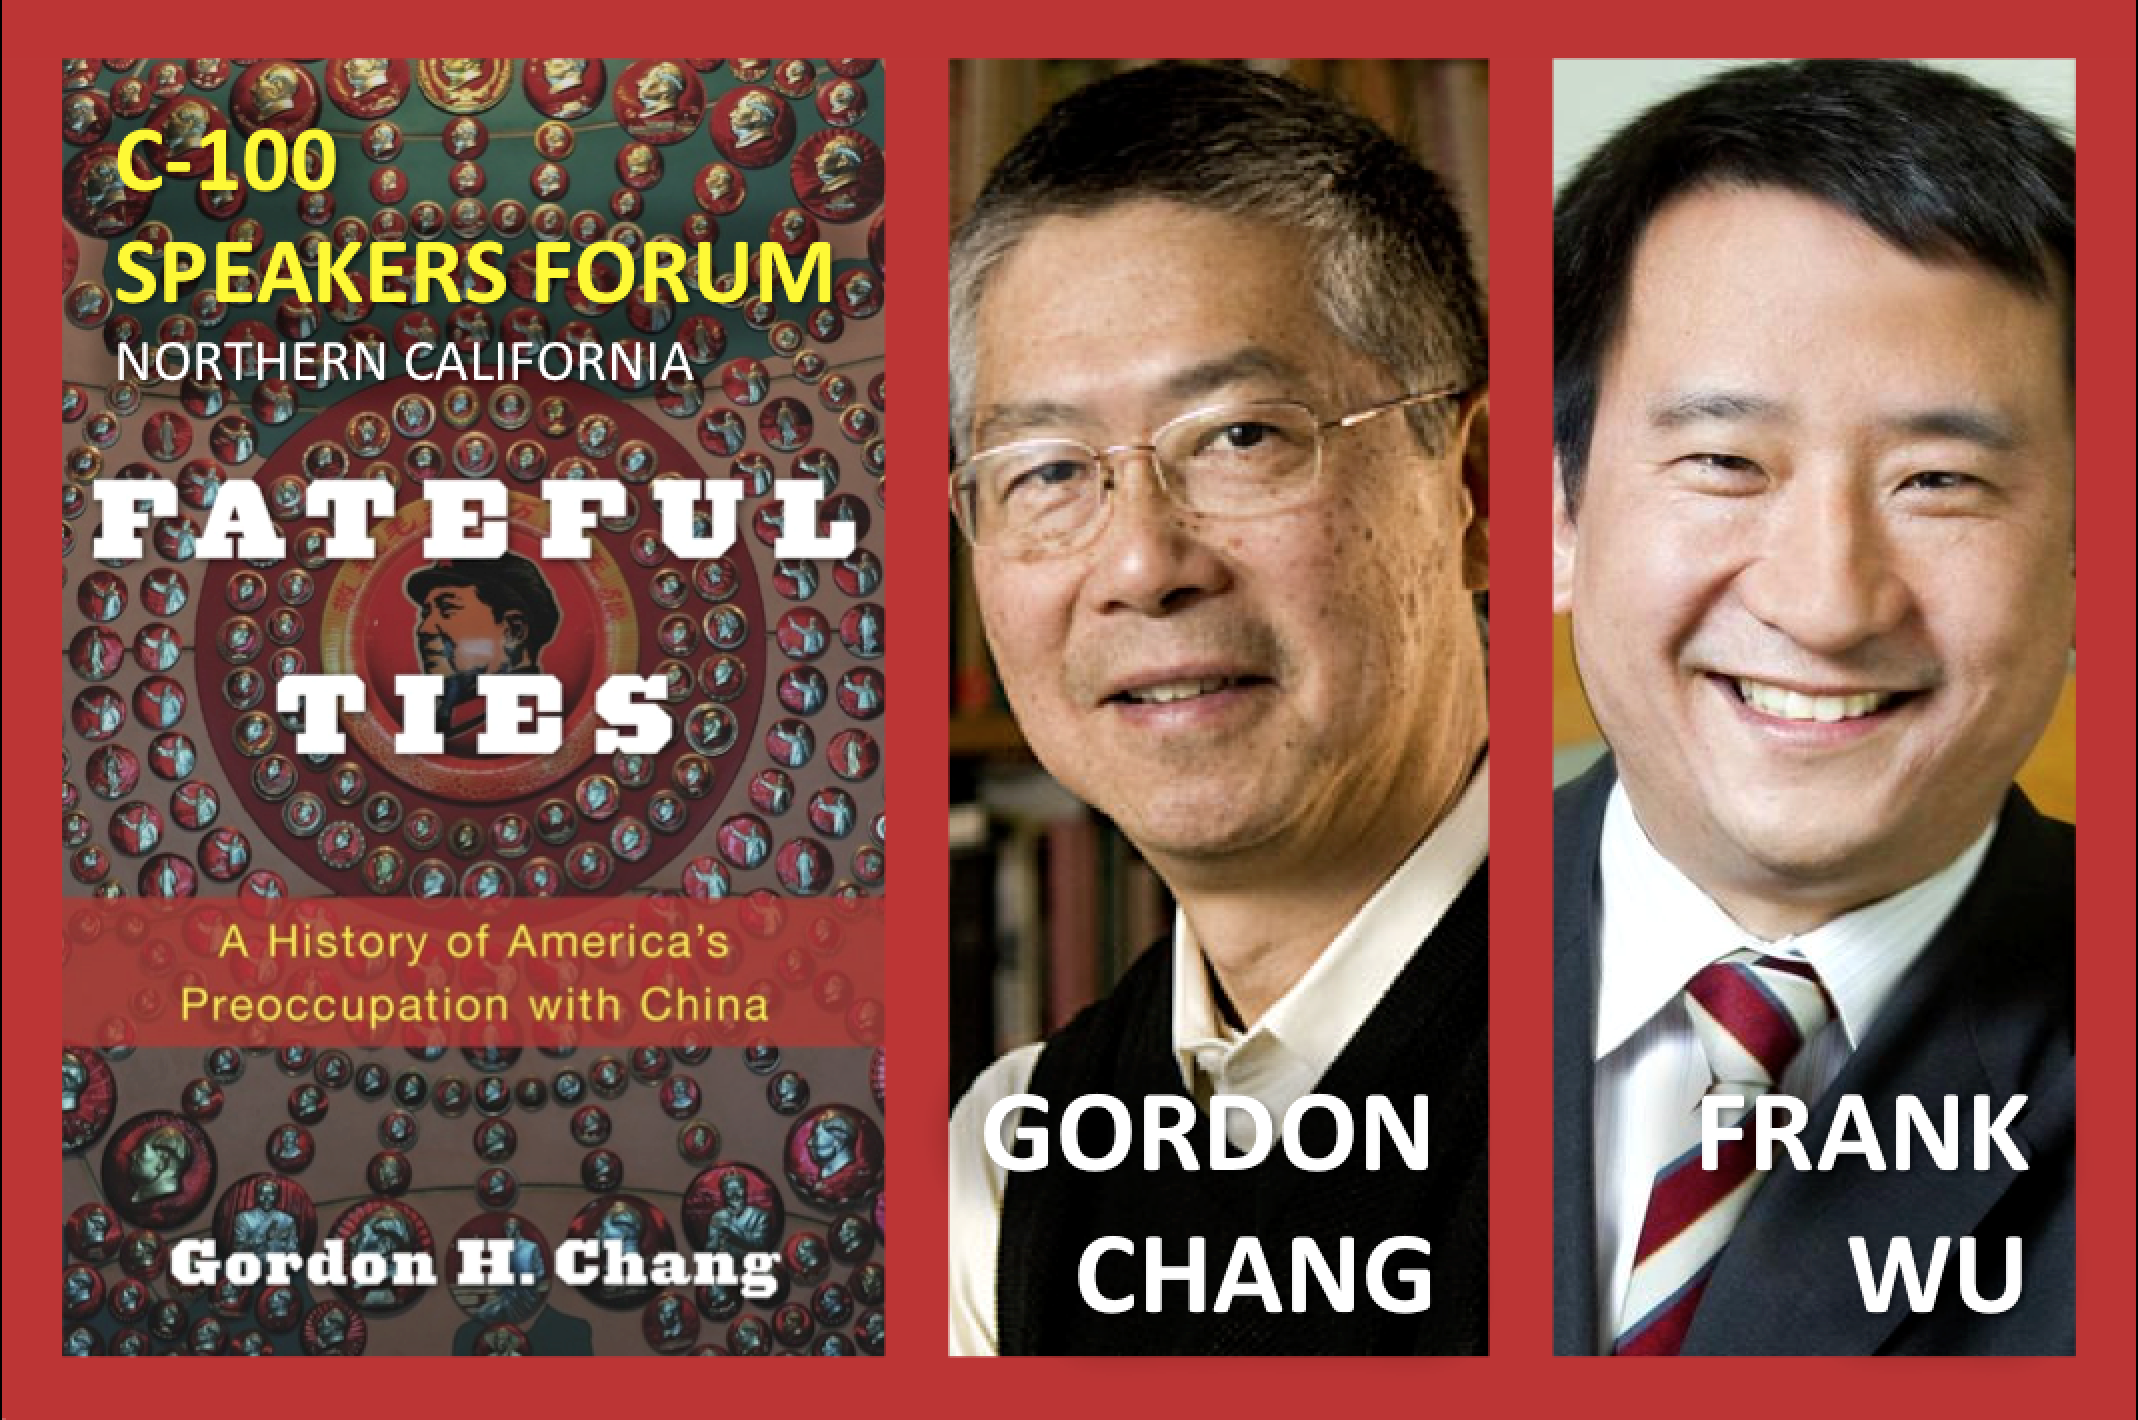 7-16 Gordon Chang event